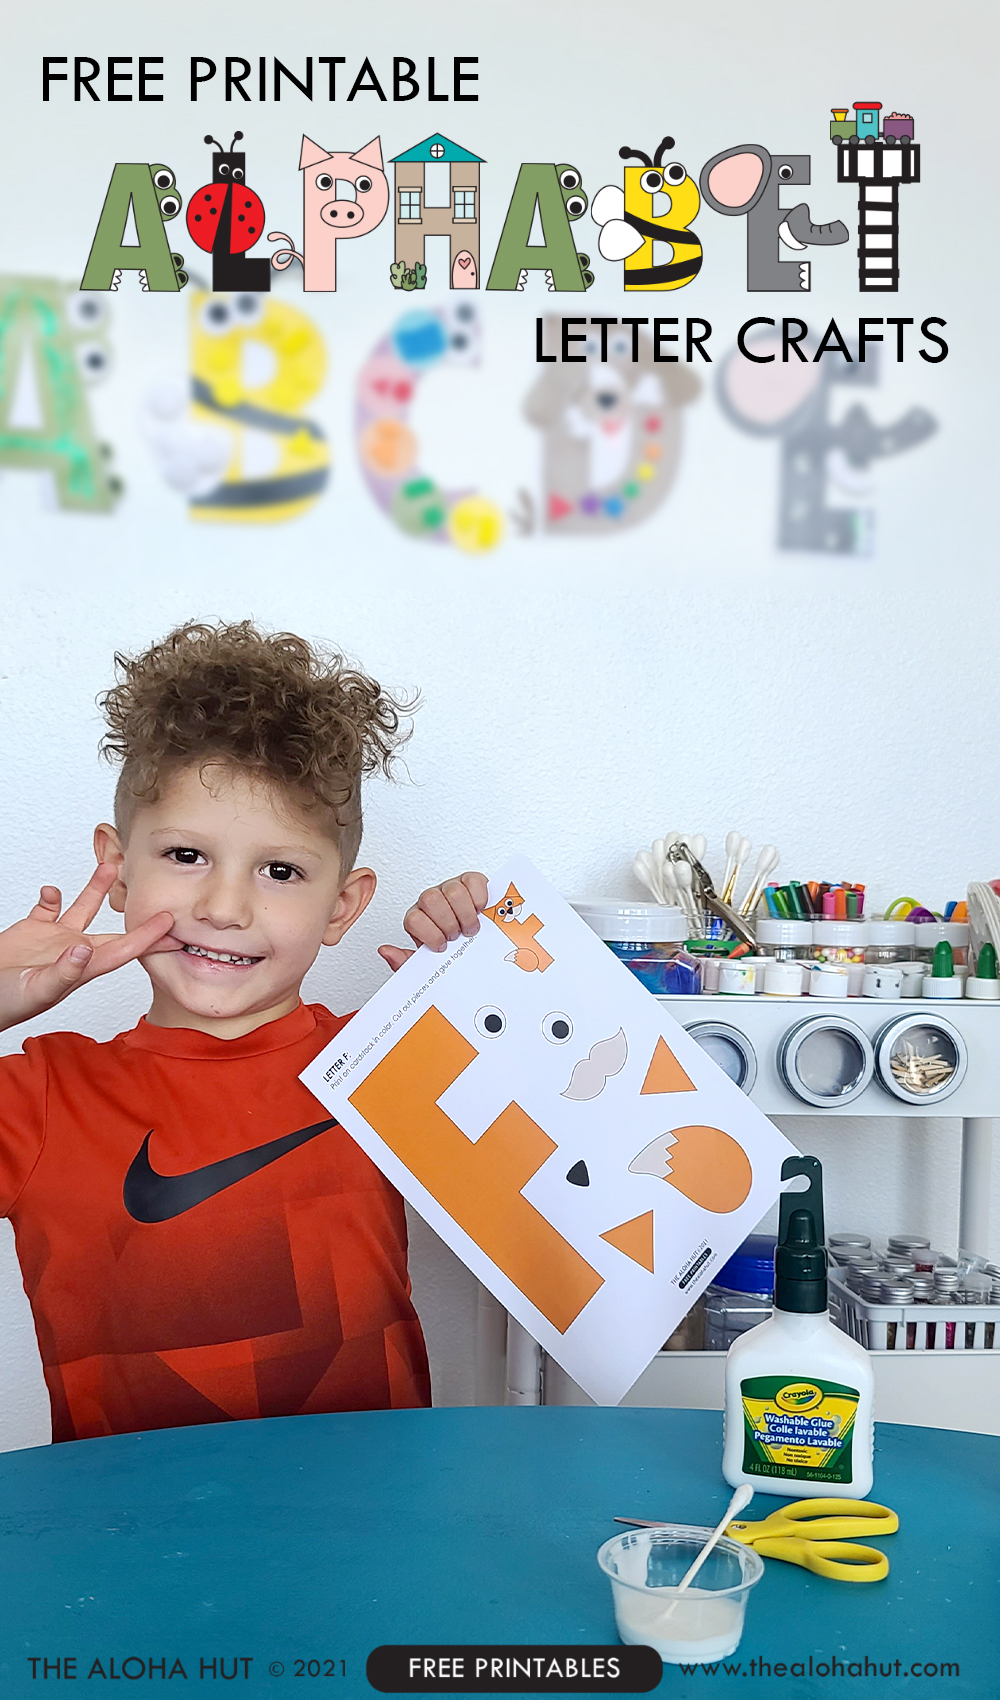 Alphabet Letter Crafts - Letter F - free printable by the Aloha Hut